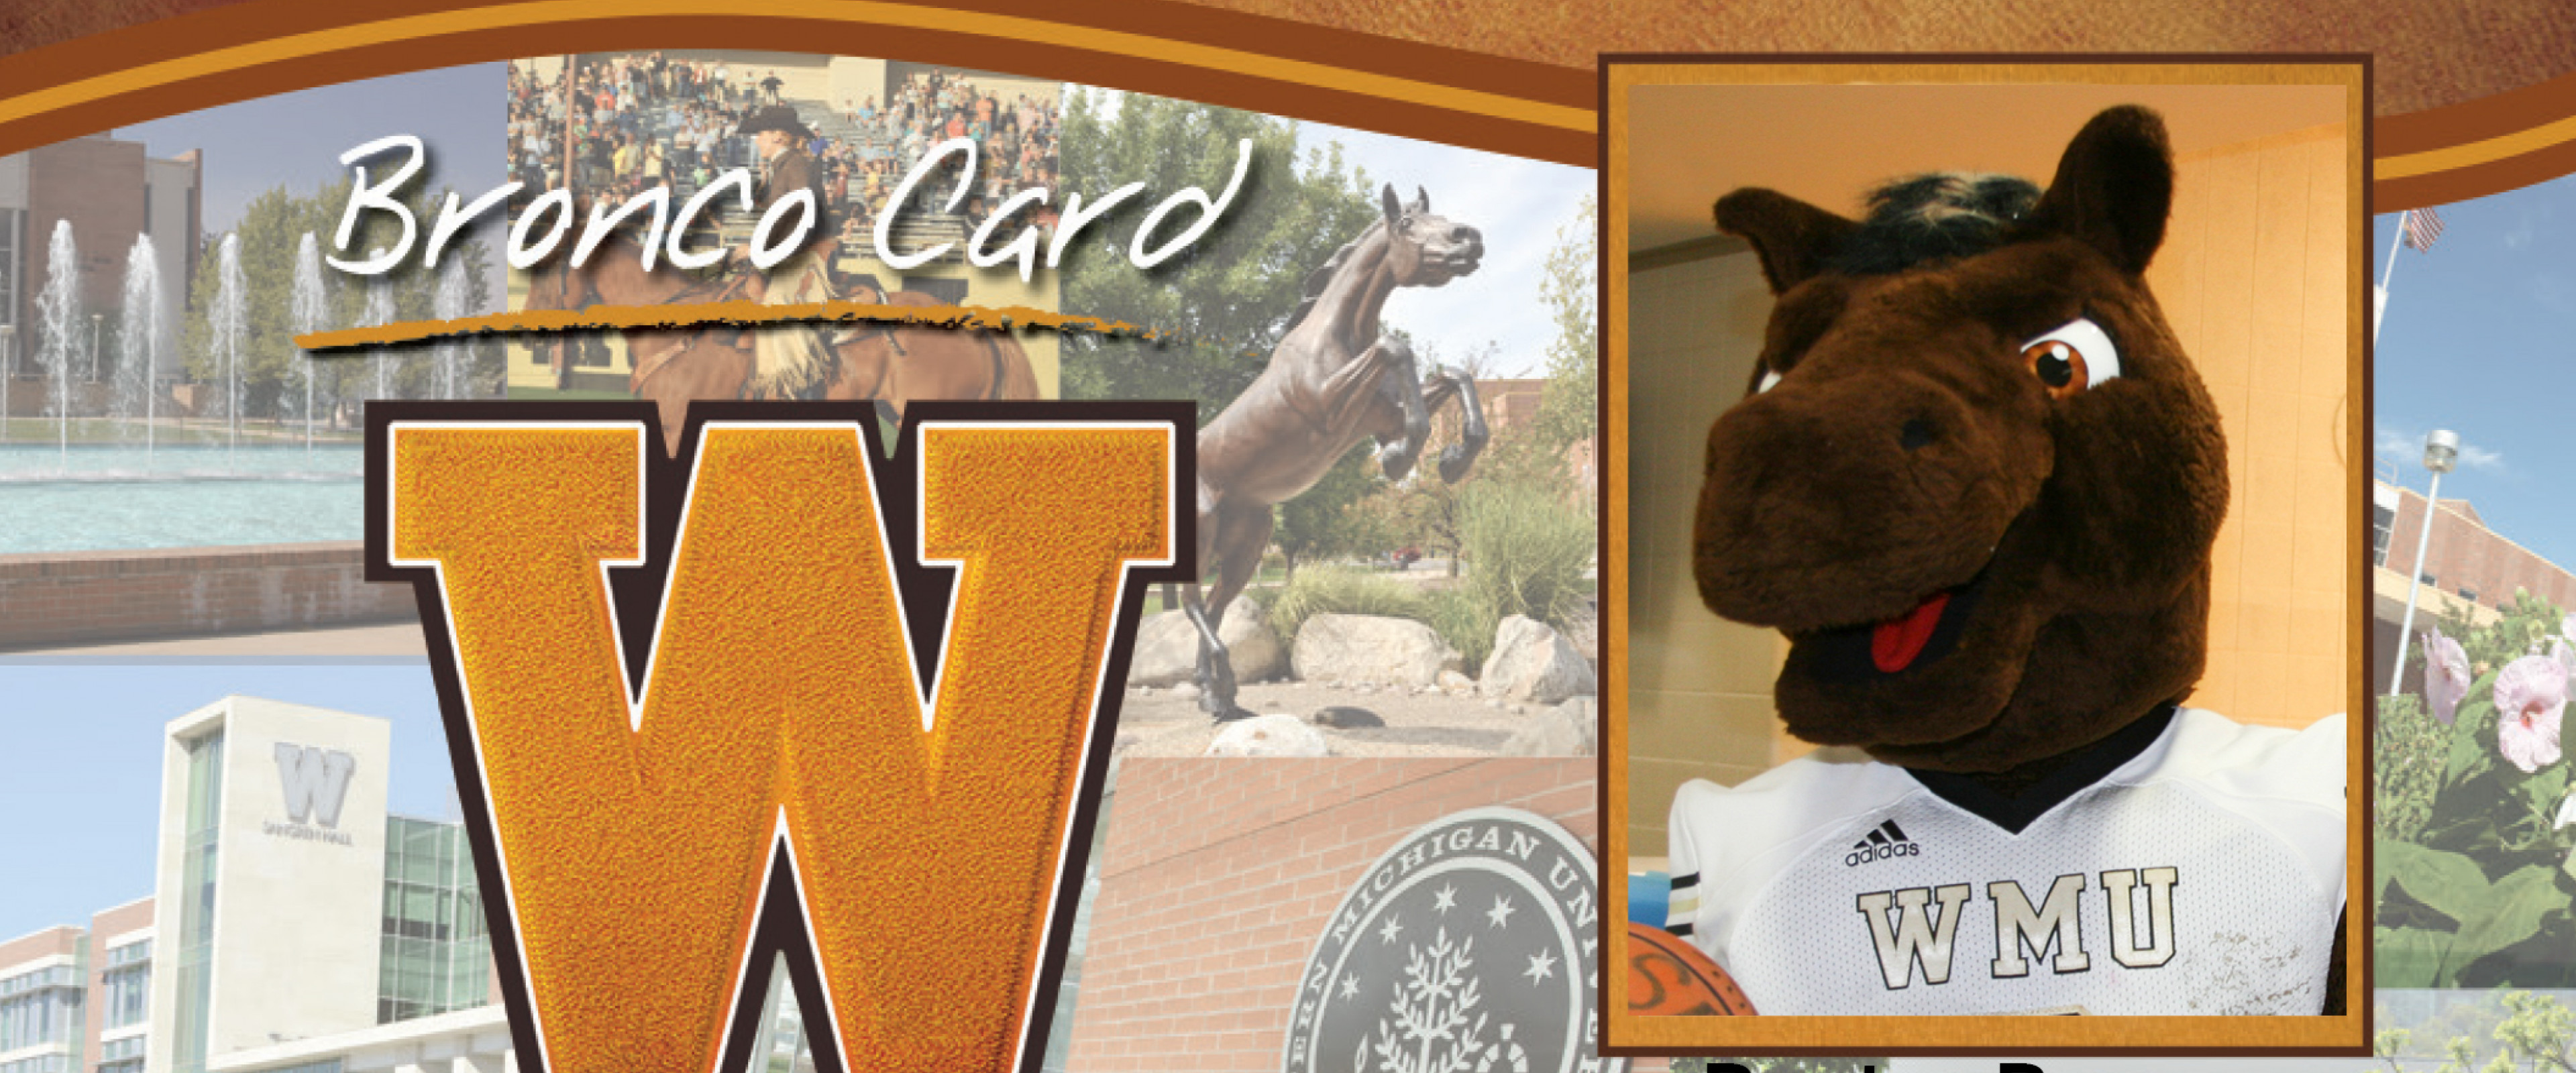 Bronco Card with Buster's photo represented in it